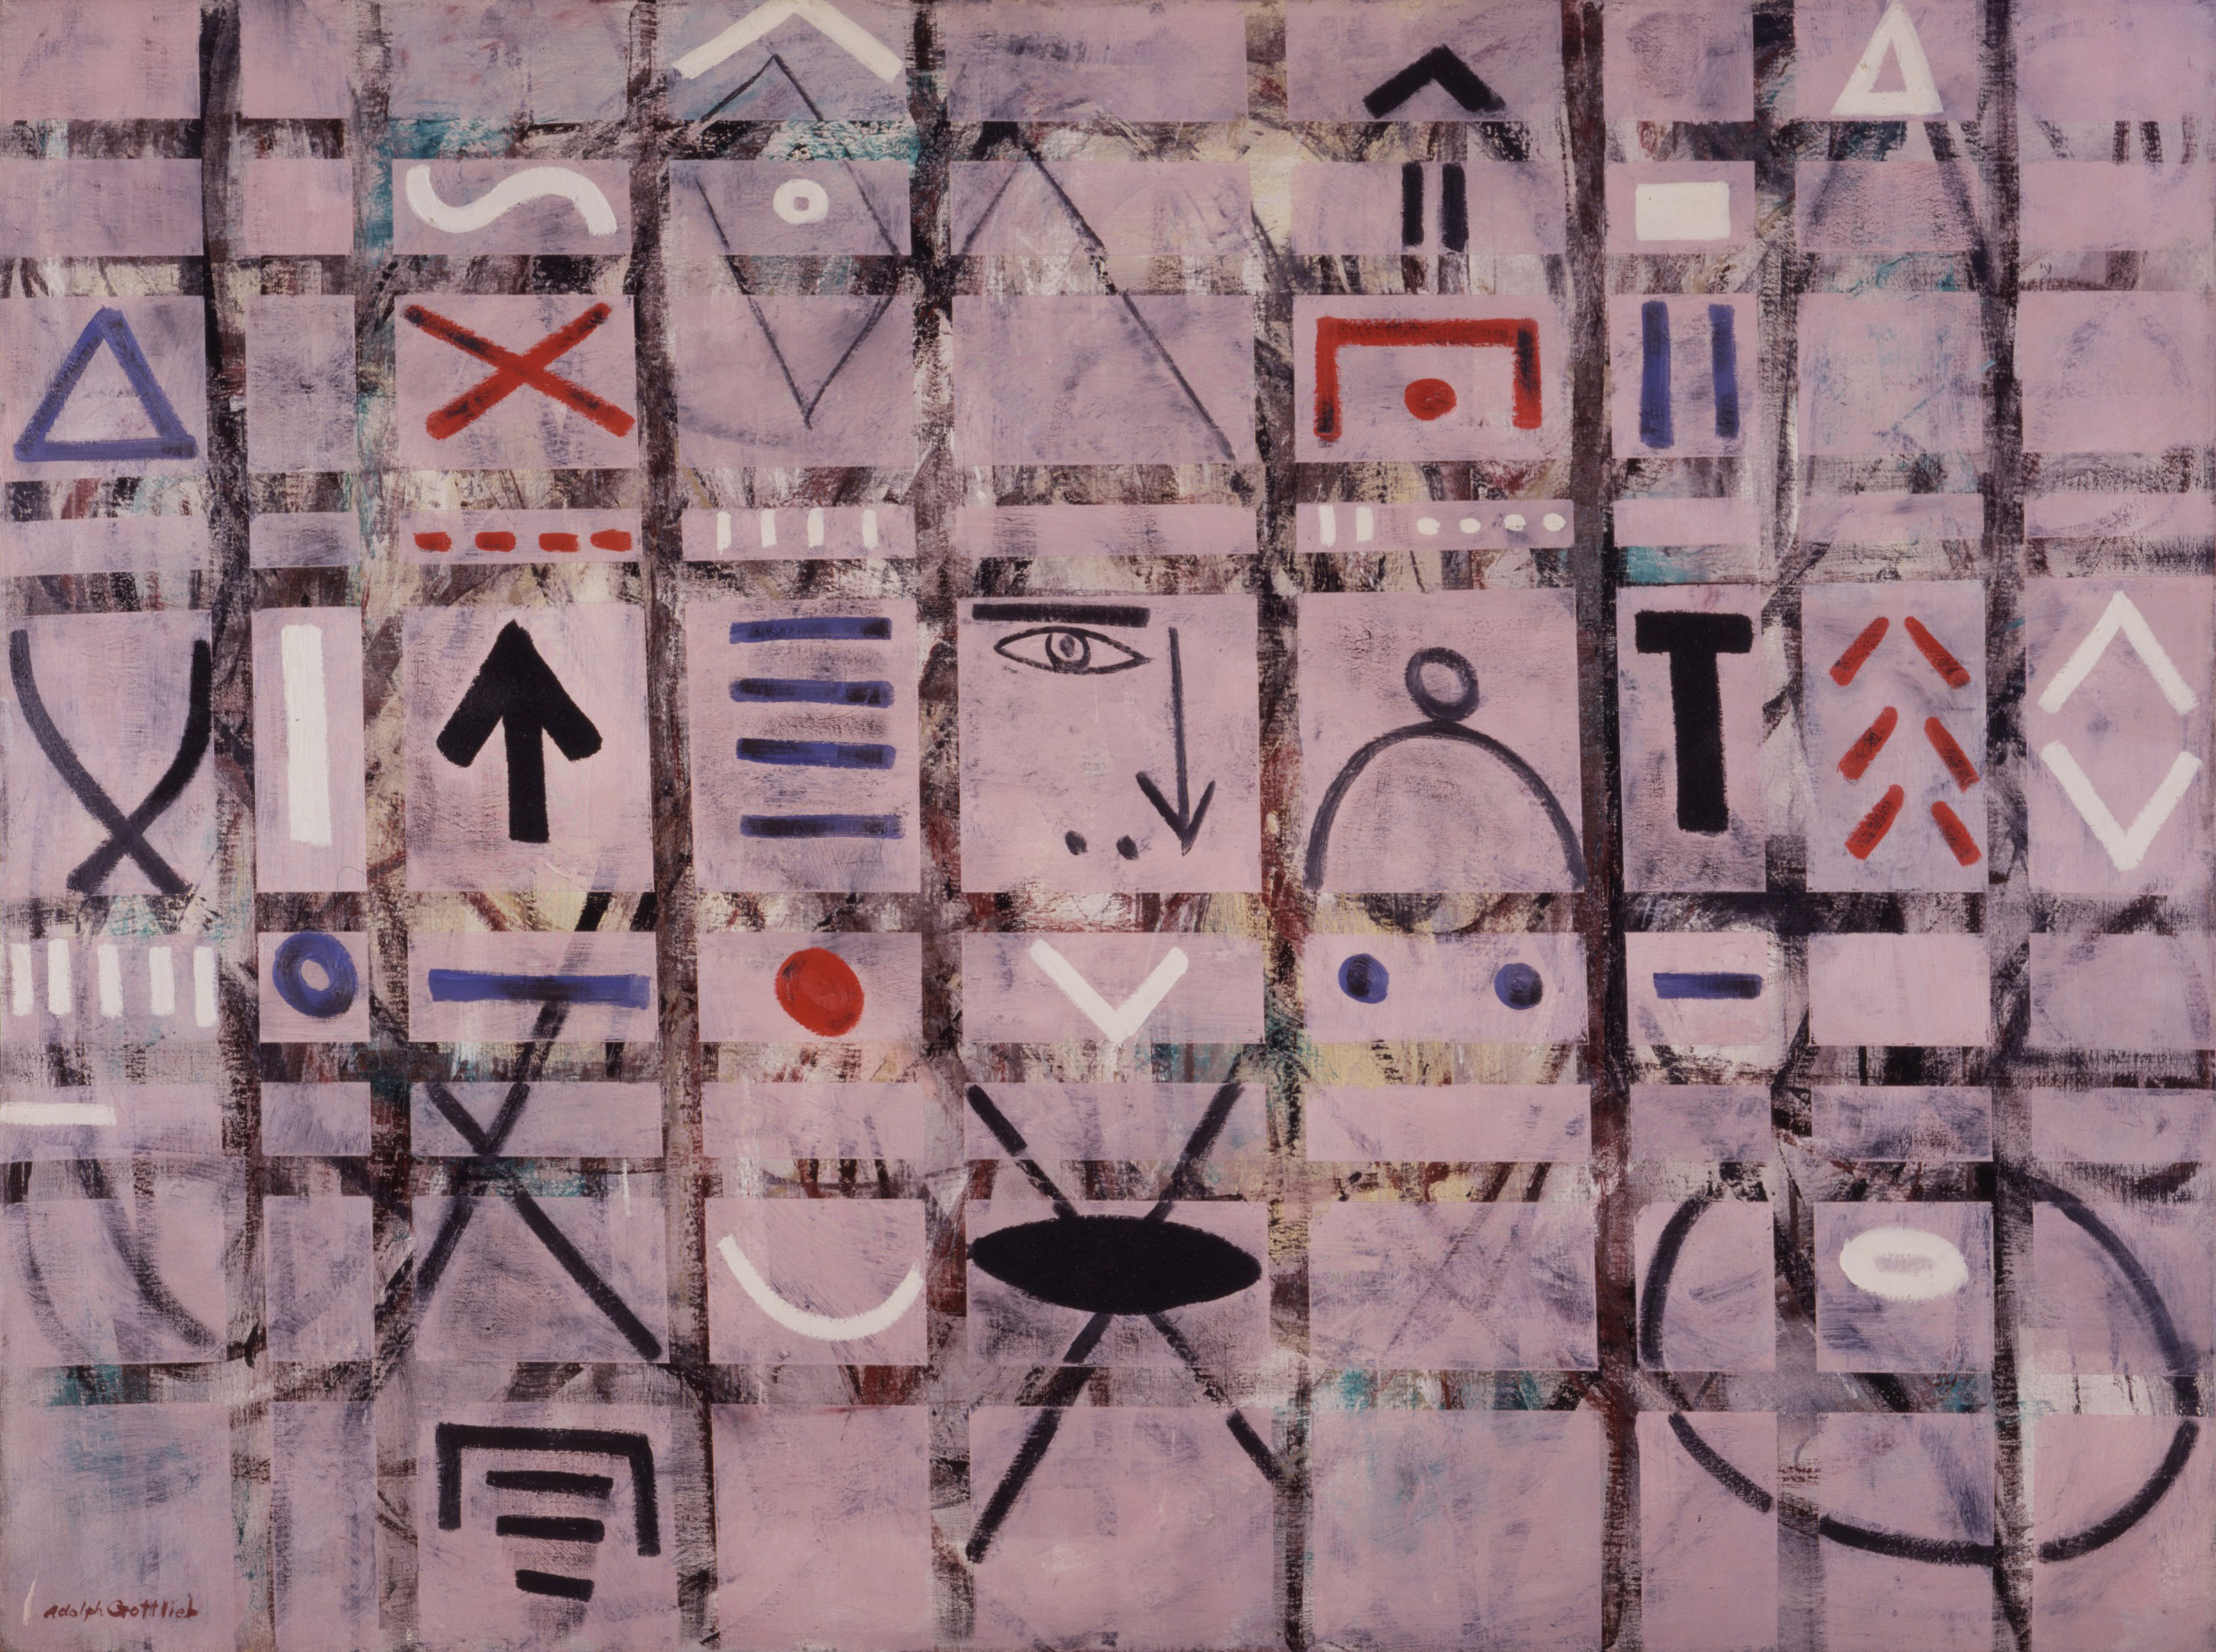 Adolph Gottlieb,  Labyrinth #1 , 1950, courtesy of Adolph and Esther Gottlieb Foundation, New York